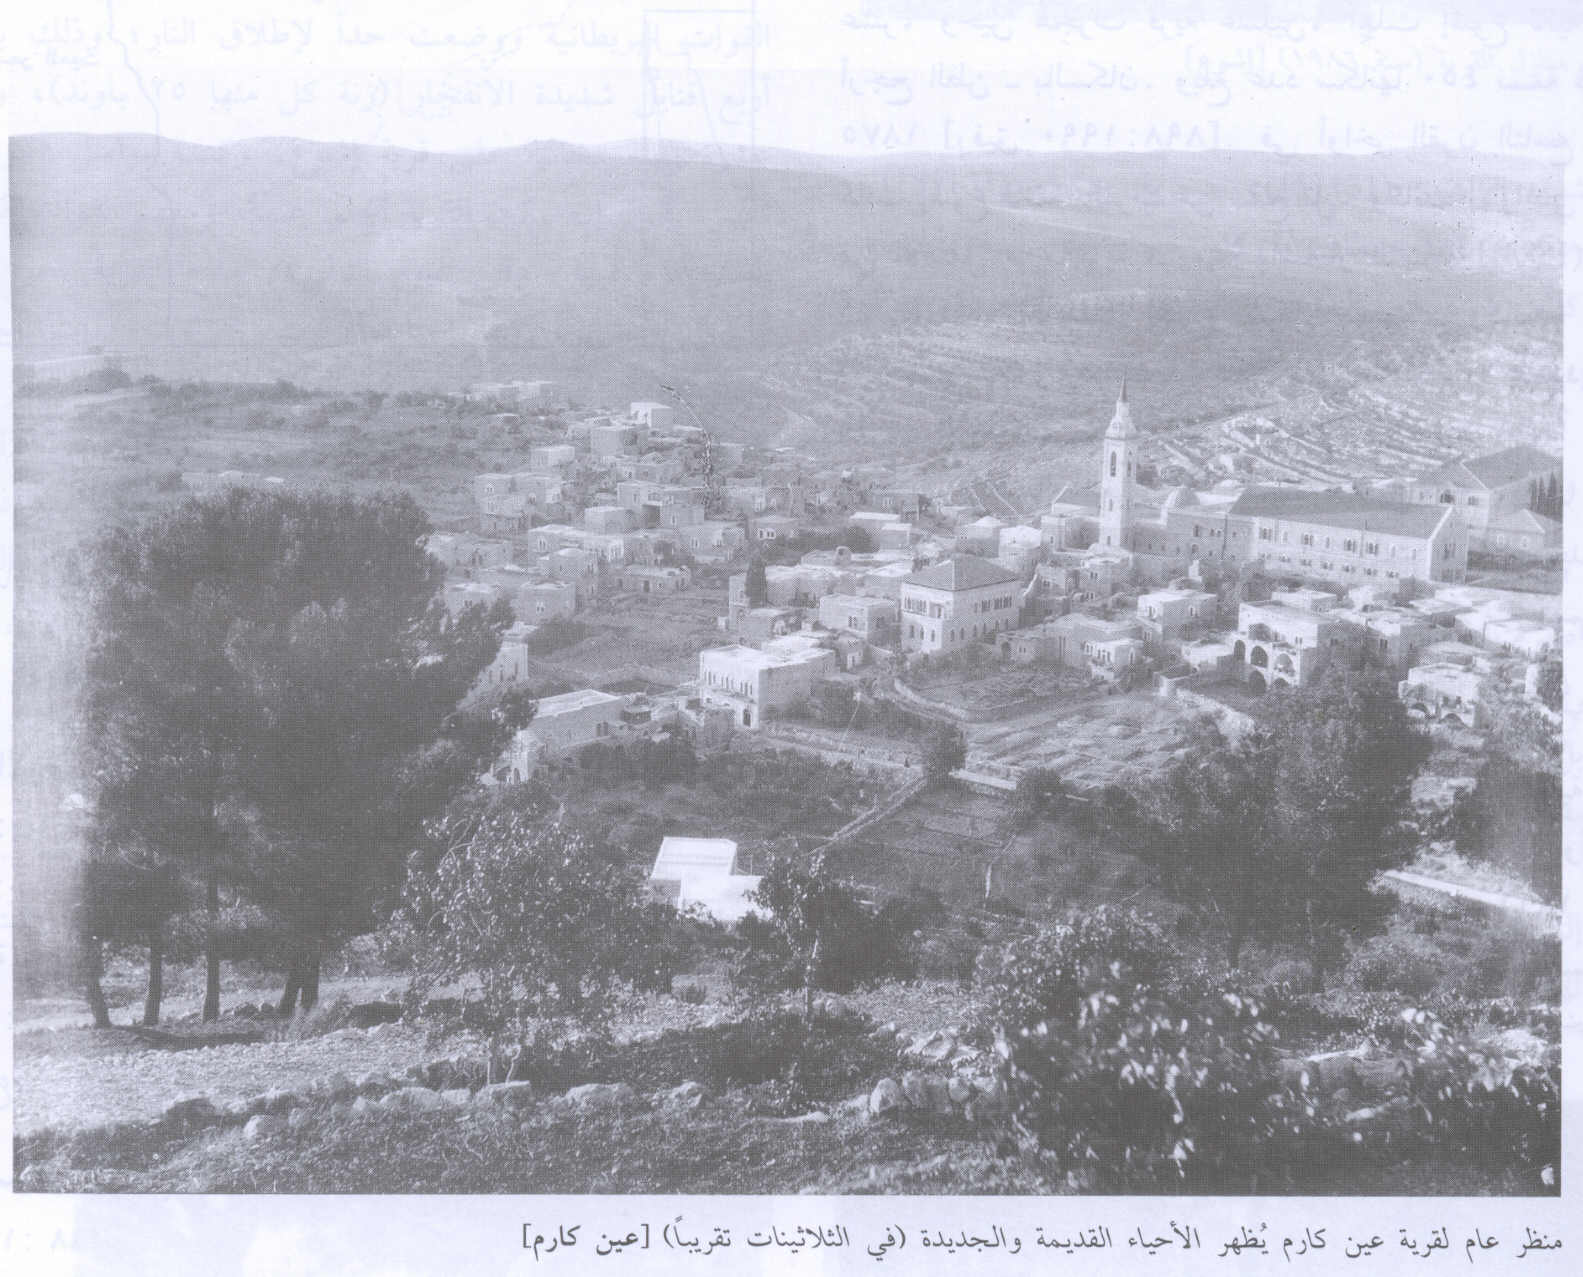 'Ayn Karim - عين كارم : A general view of 'Ayn Karim, pre-1935